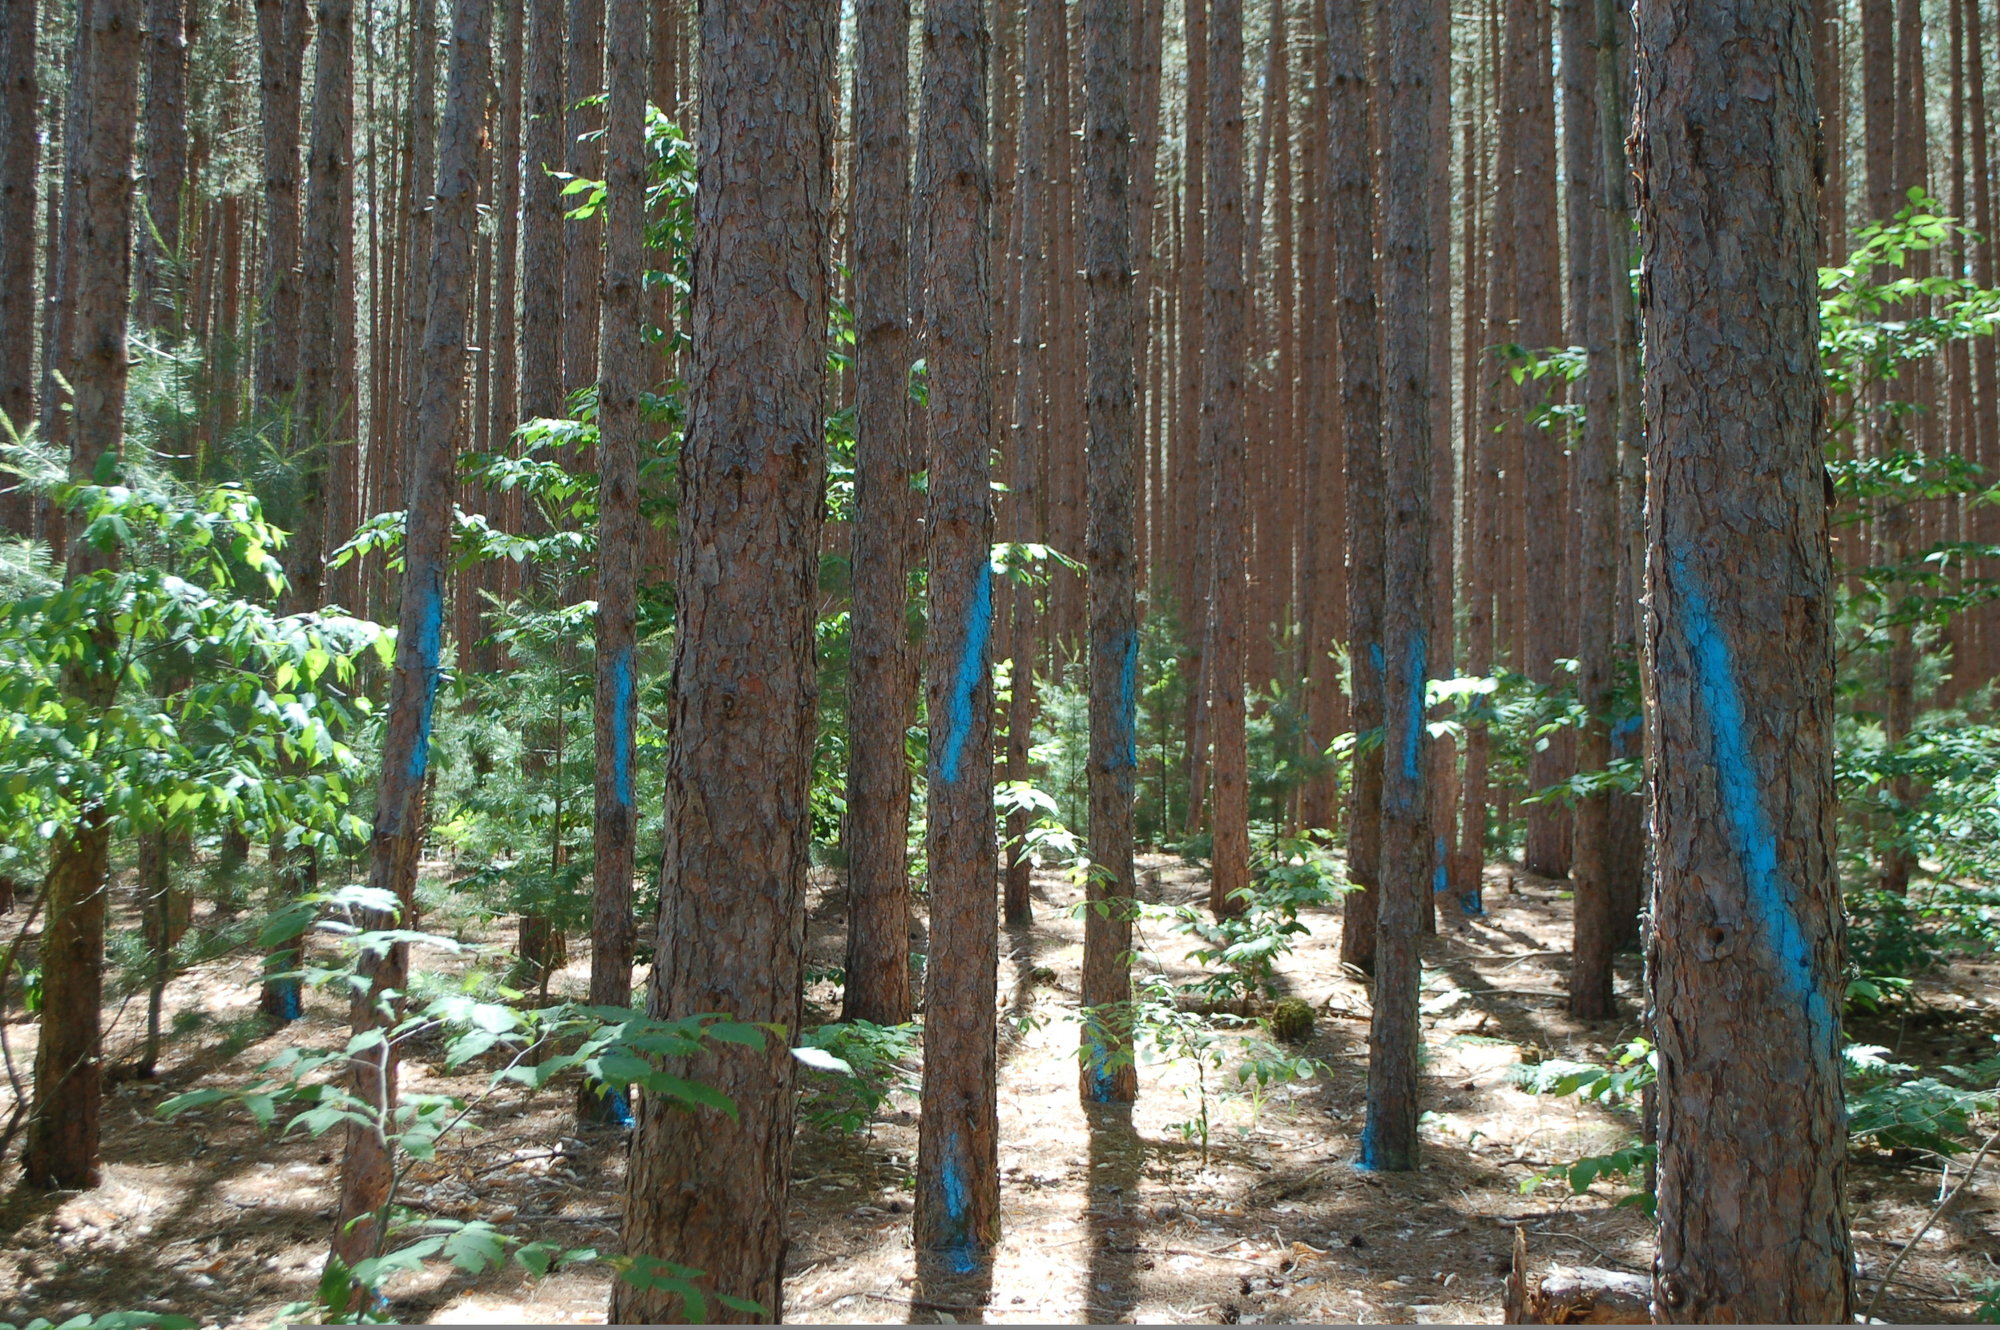 A stand of red pine trees marked for cutting.